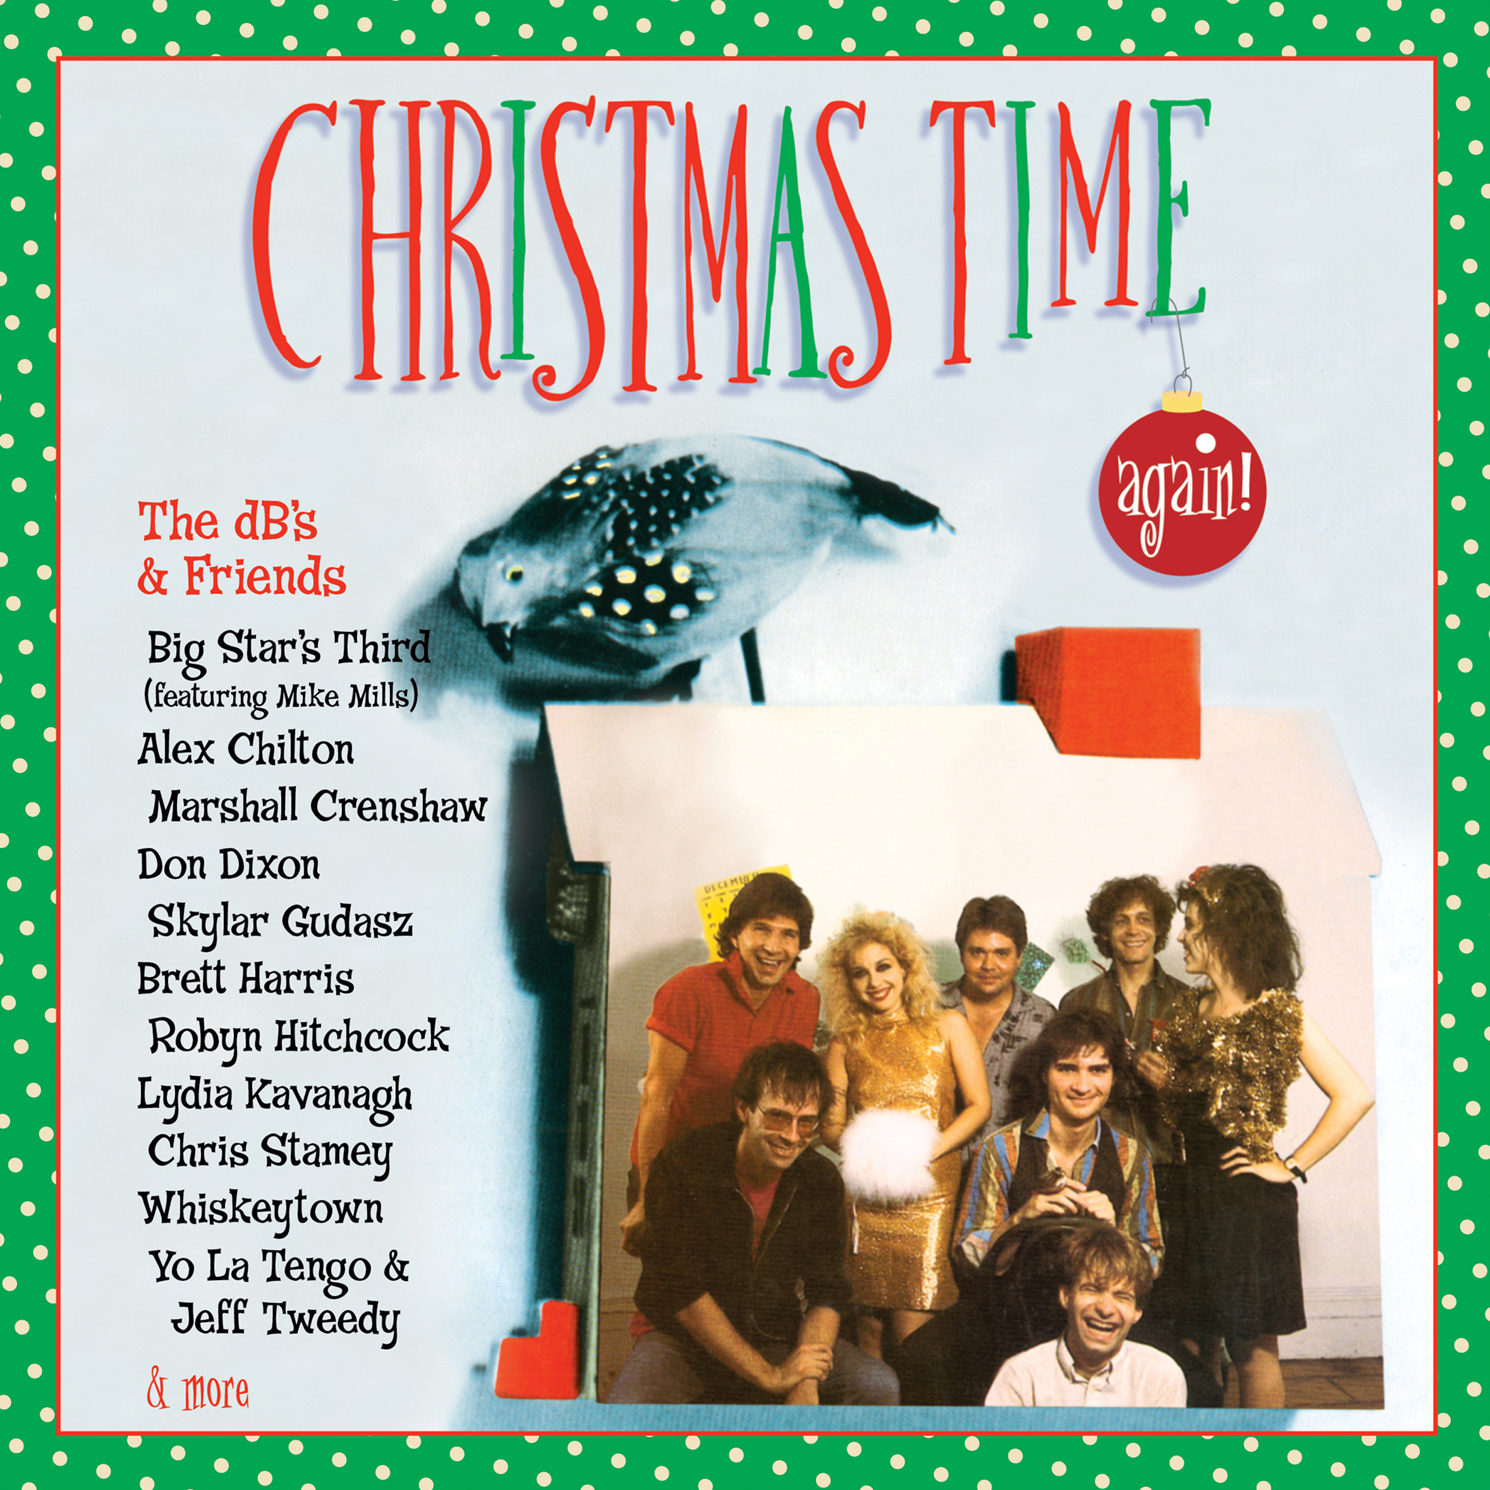 The dB's & Friends: Christmas Time Again!  Release Date: October 16, 2015 Label: Omnivore Recordings  SERVICE: Restoration,Mastering NUMBER OF DISCS: 1 GENRE: Holiday FORMAT: CD